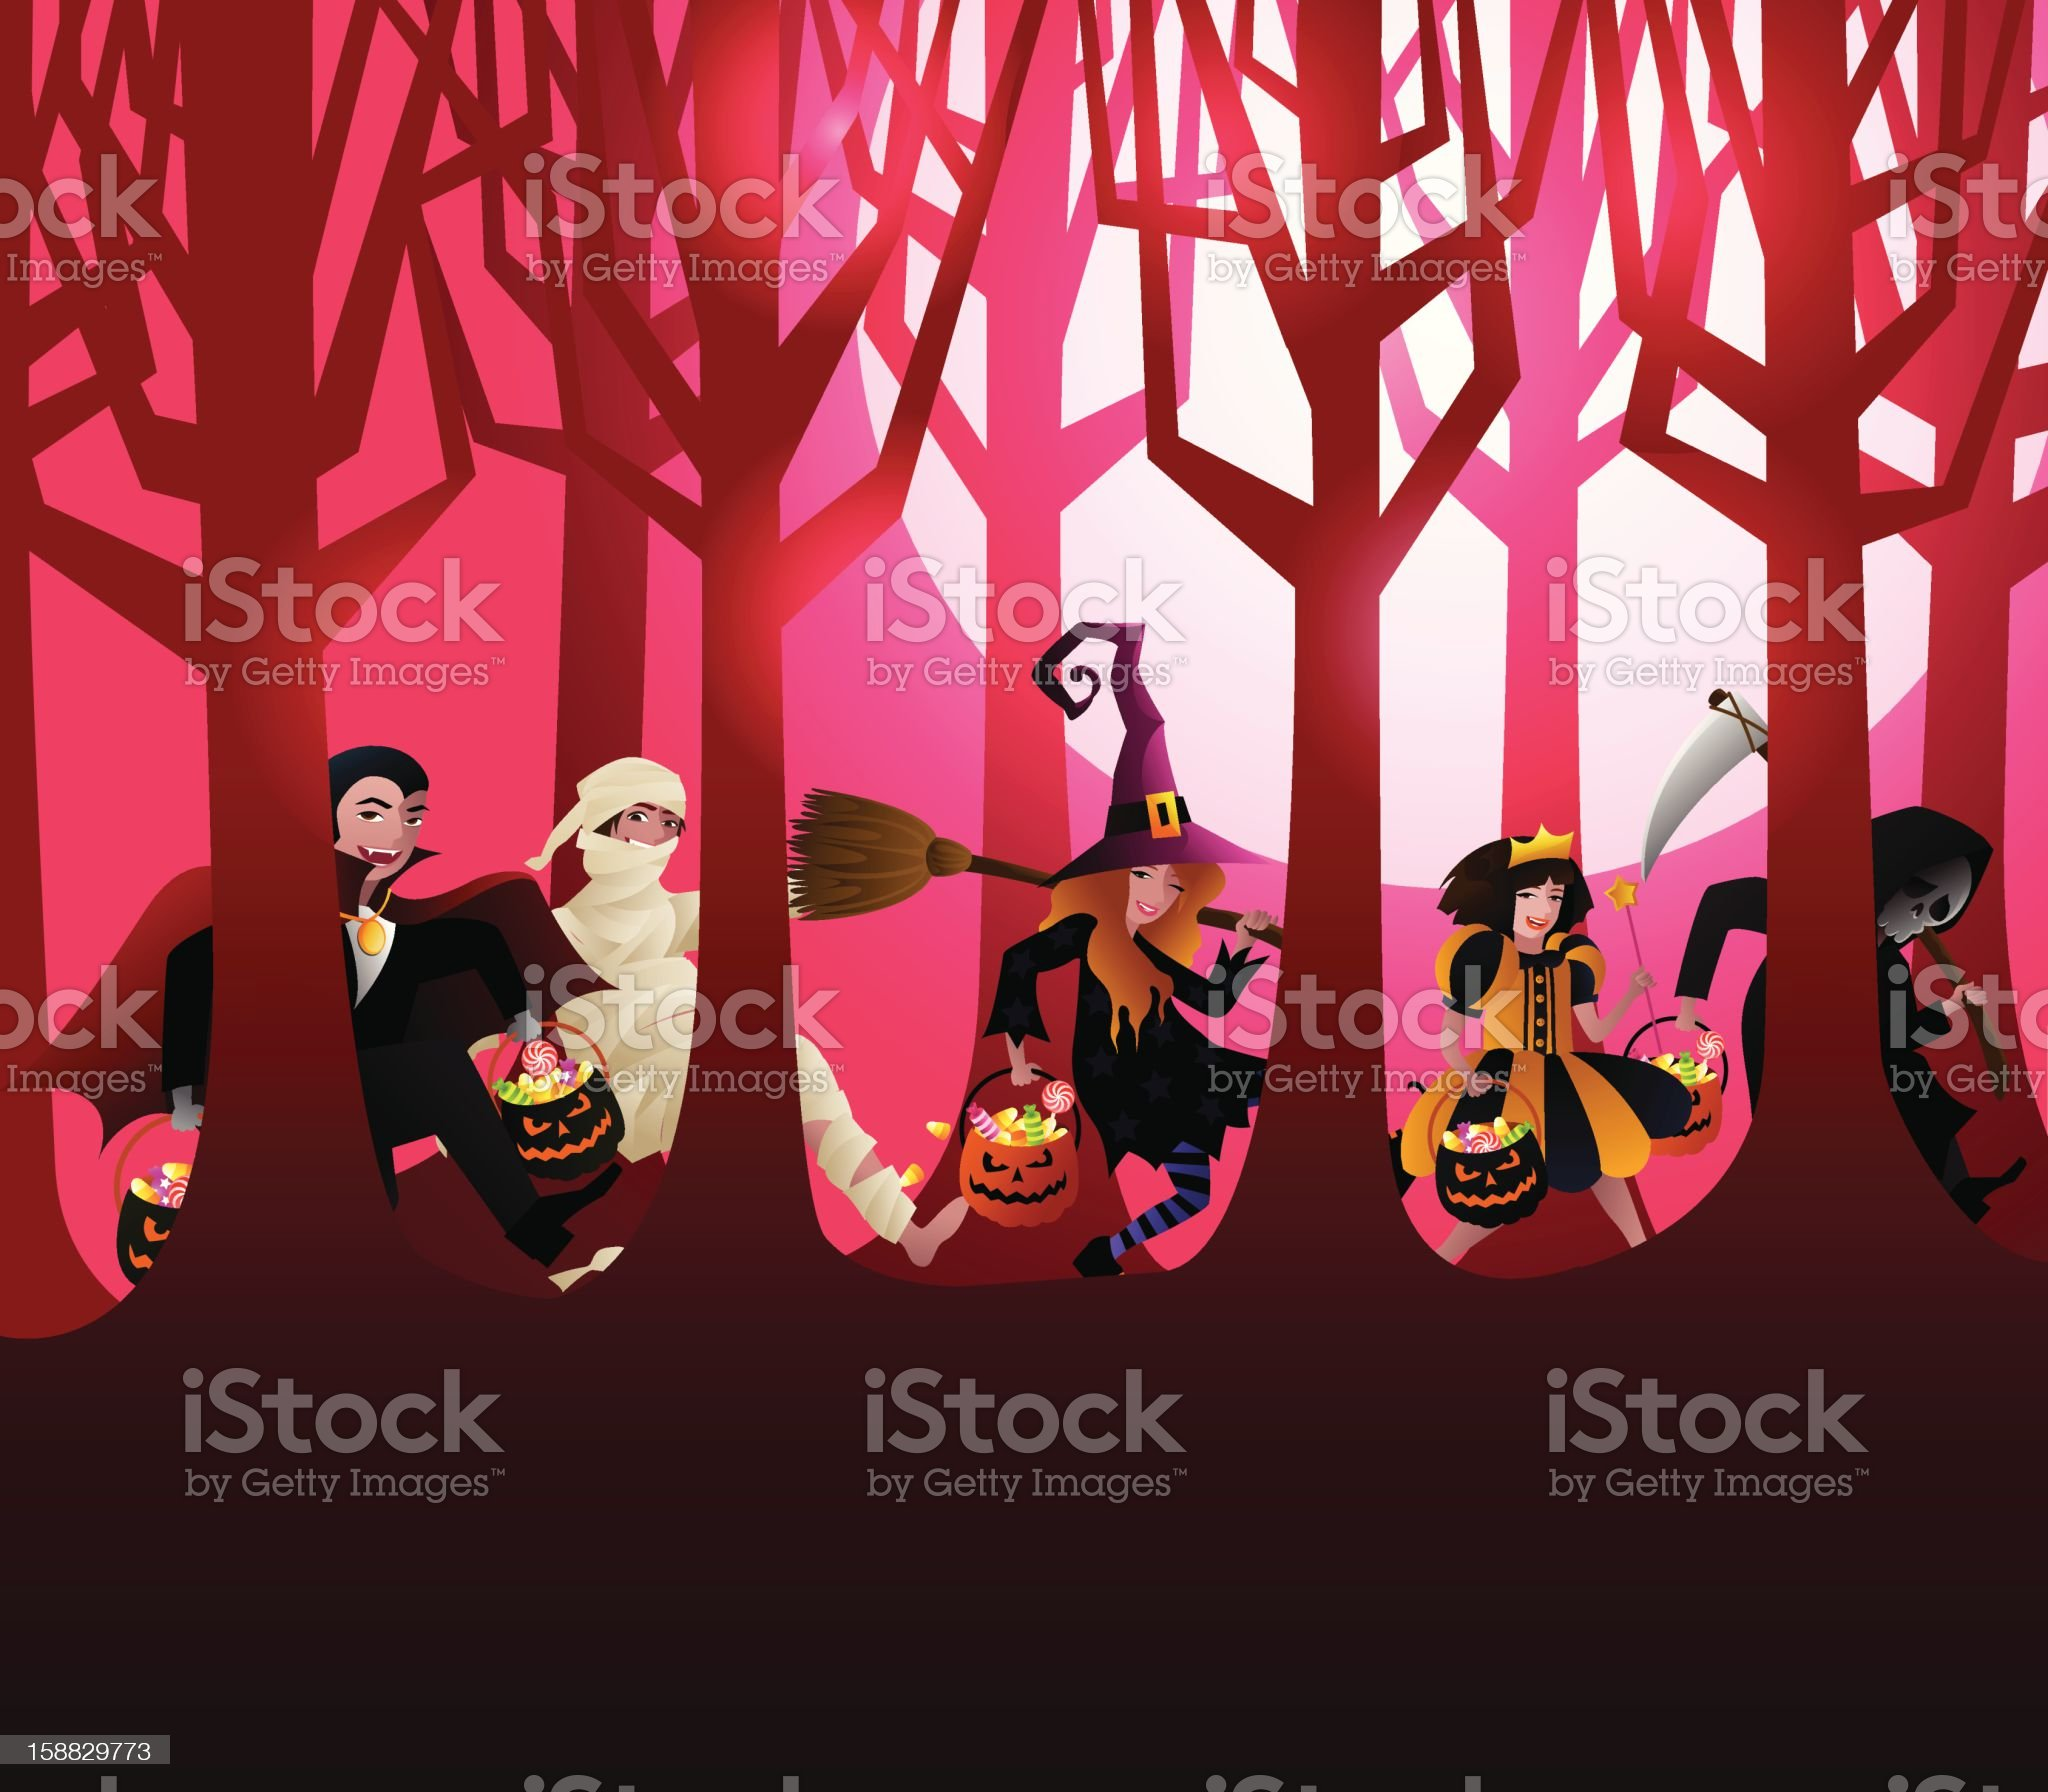 Halloween Trick or Treat Background Vector royalty-free stock vector art